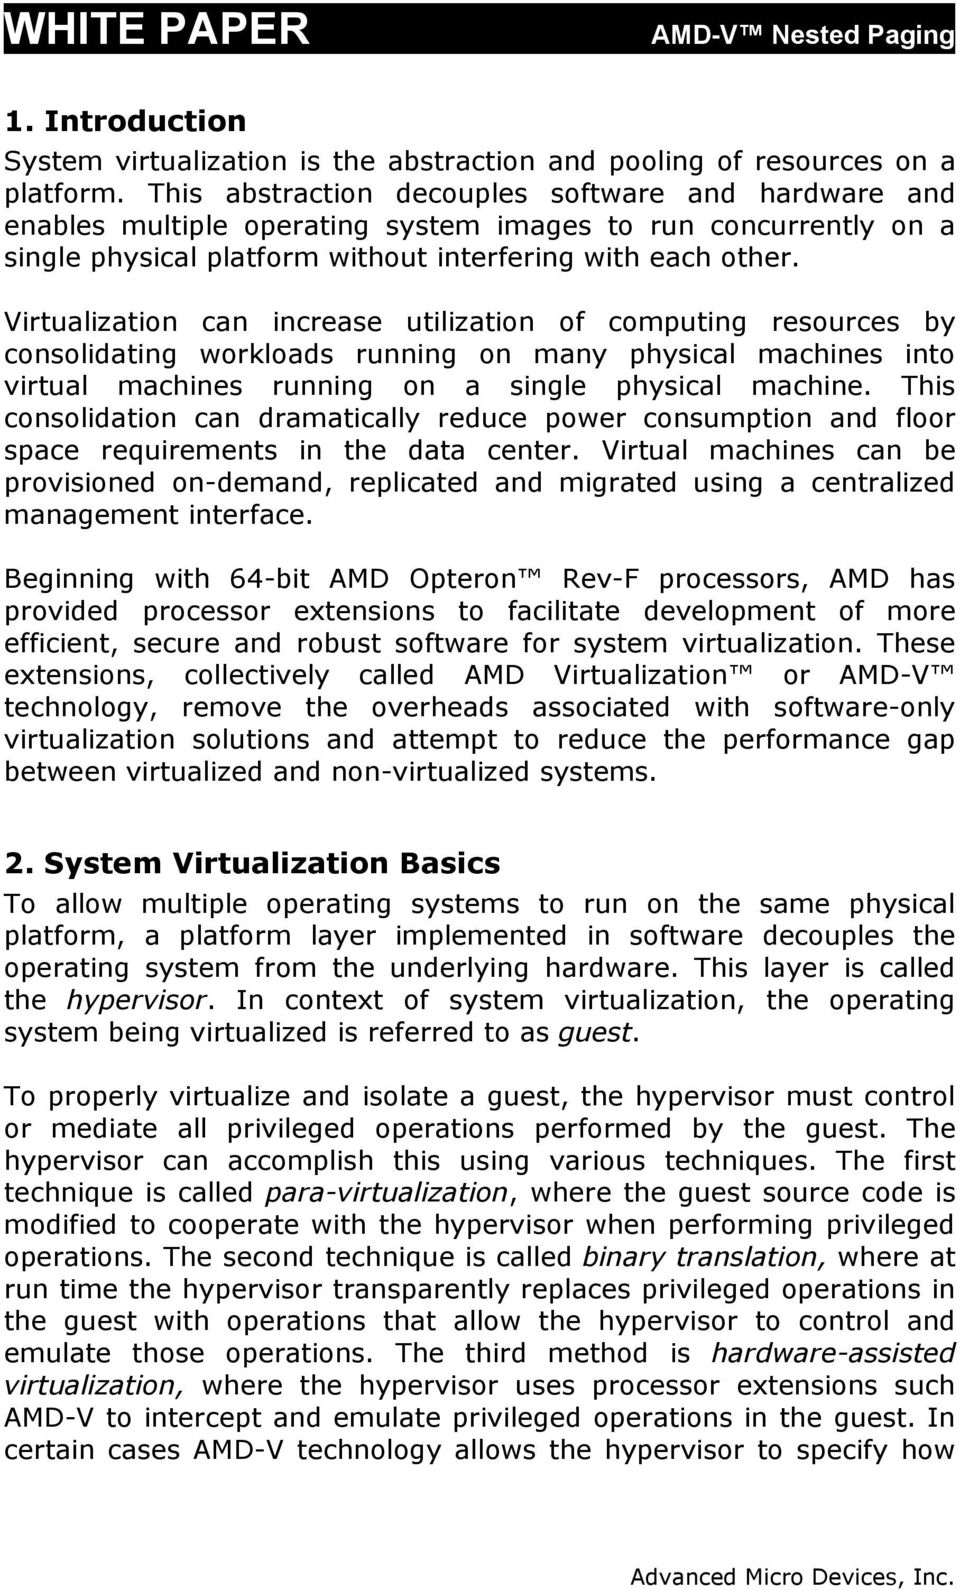 Virtualization can increase utilization of computing resources by consolidating workloads running on many physical machines into virtual machines running on a single physical machine.